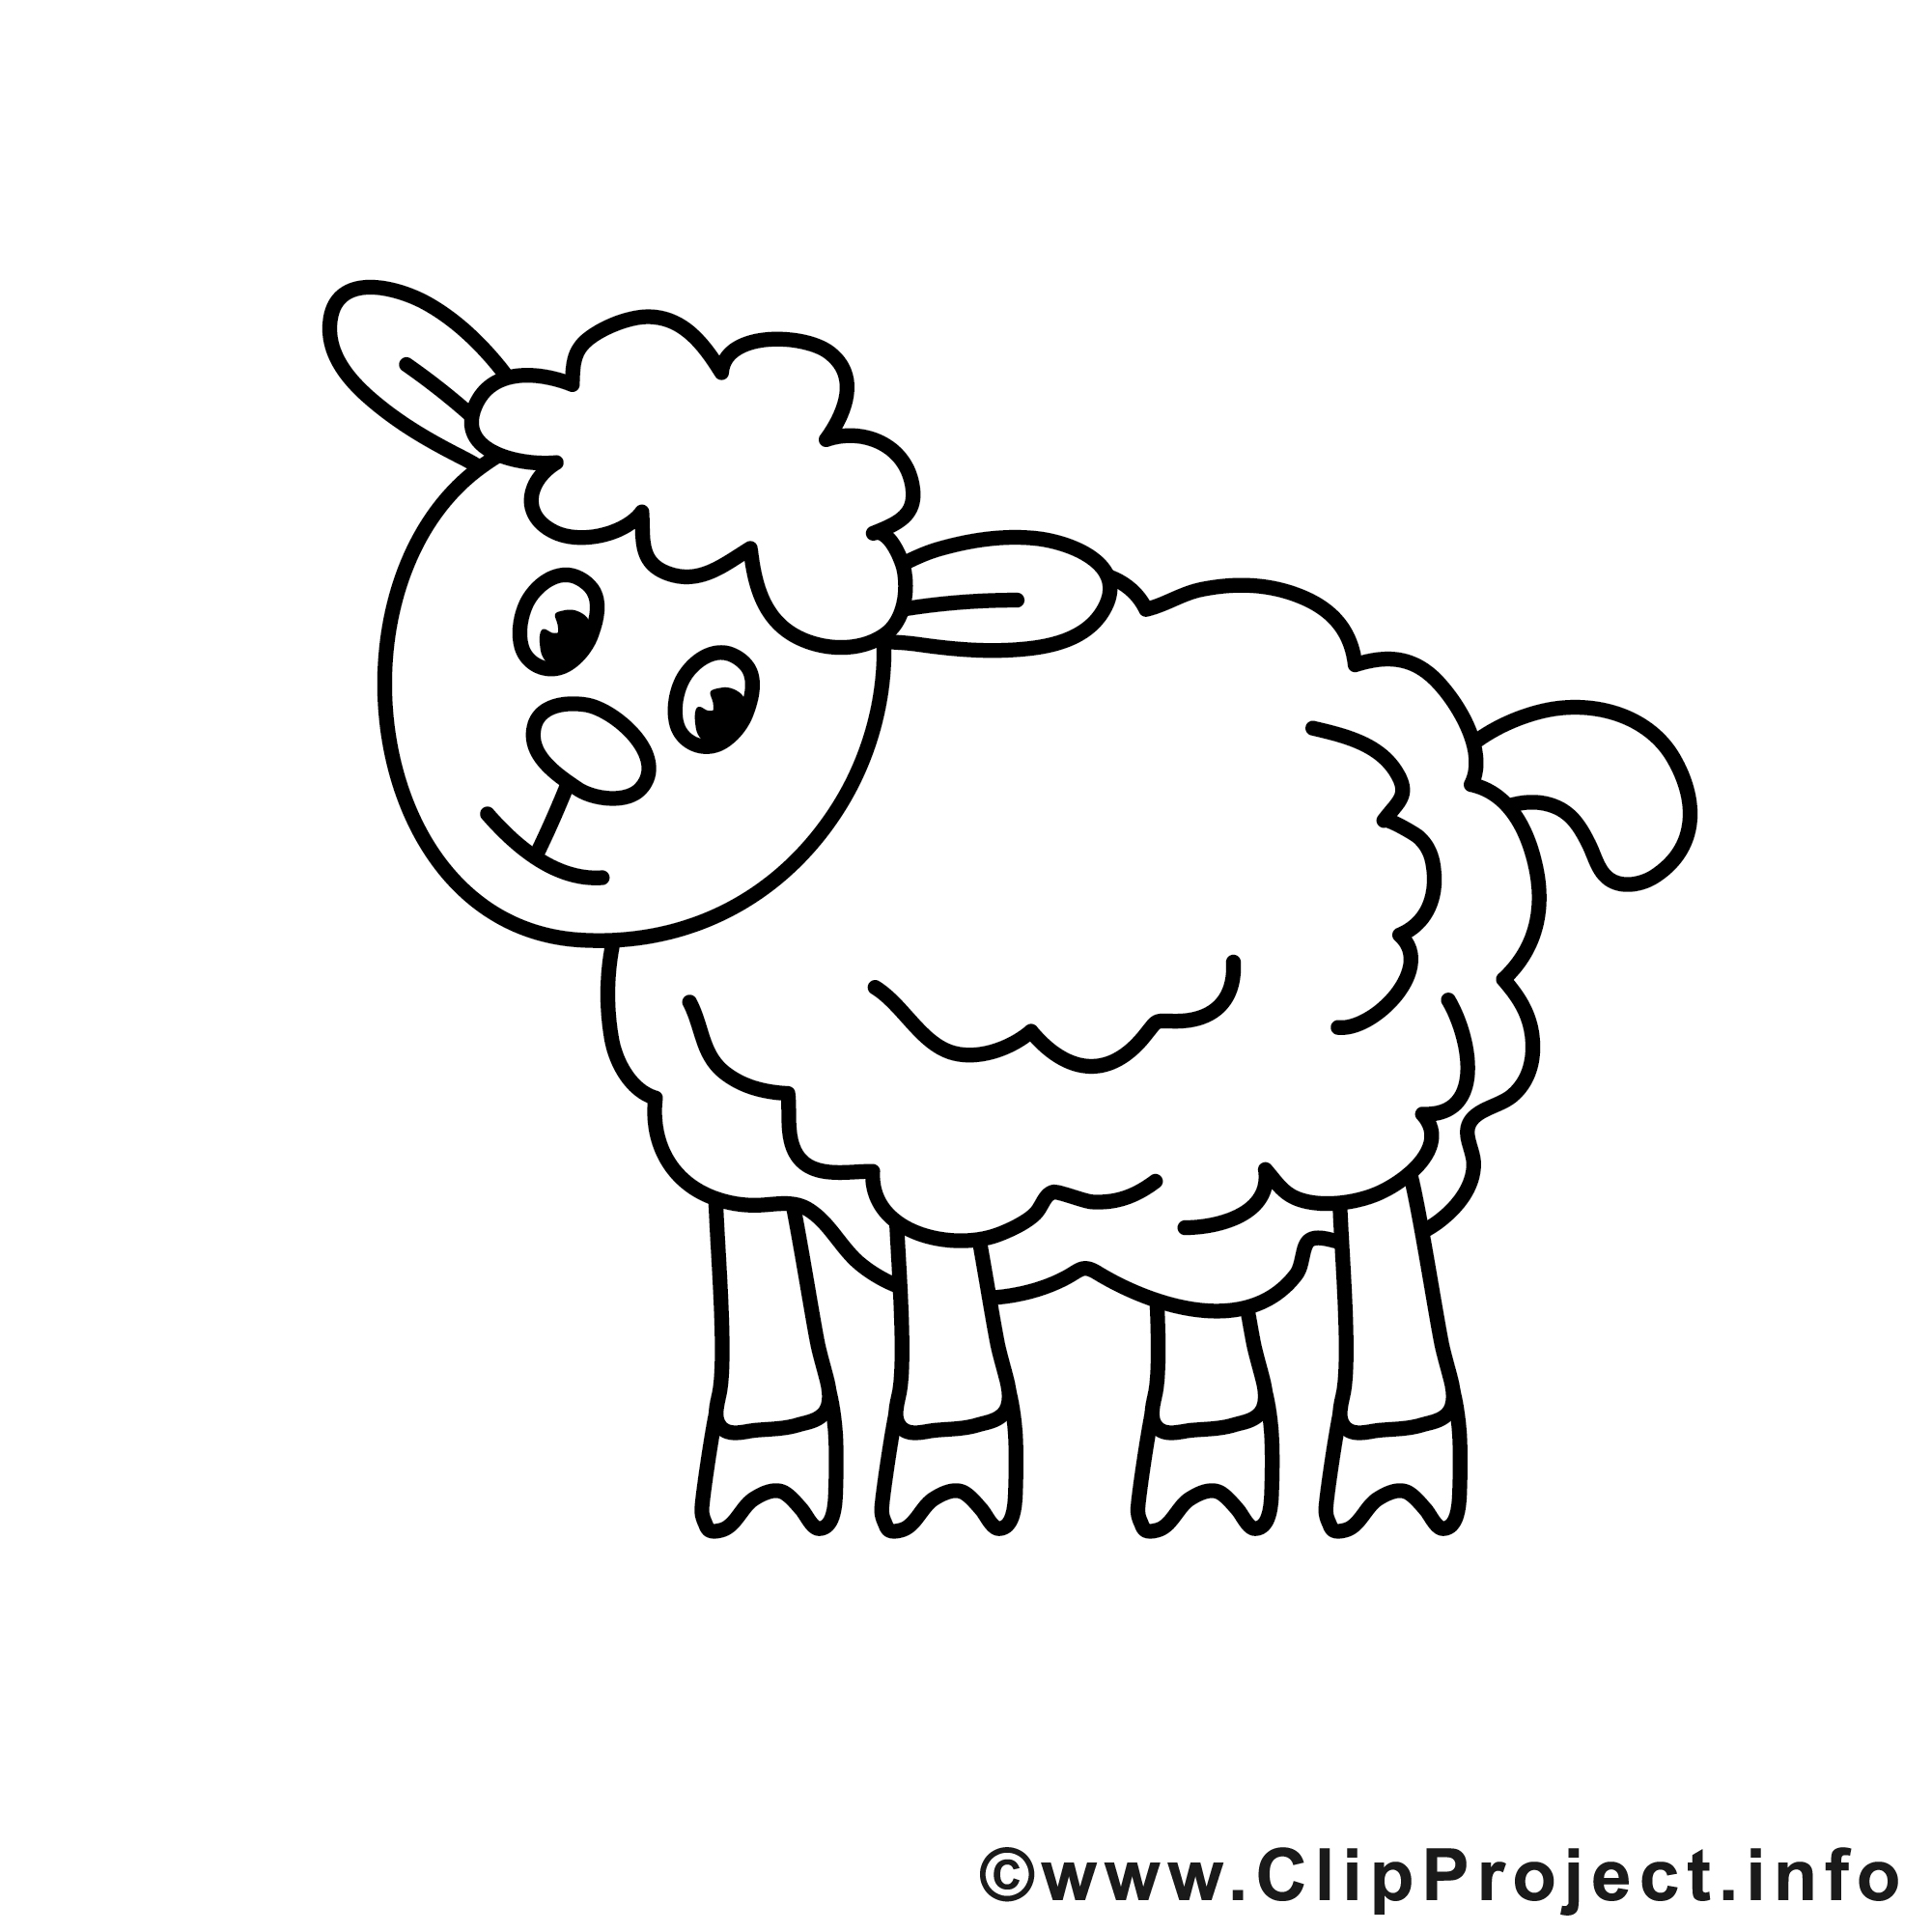 Schäfchen clipart 20 free Cliparts | Download images on ...